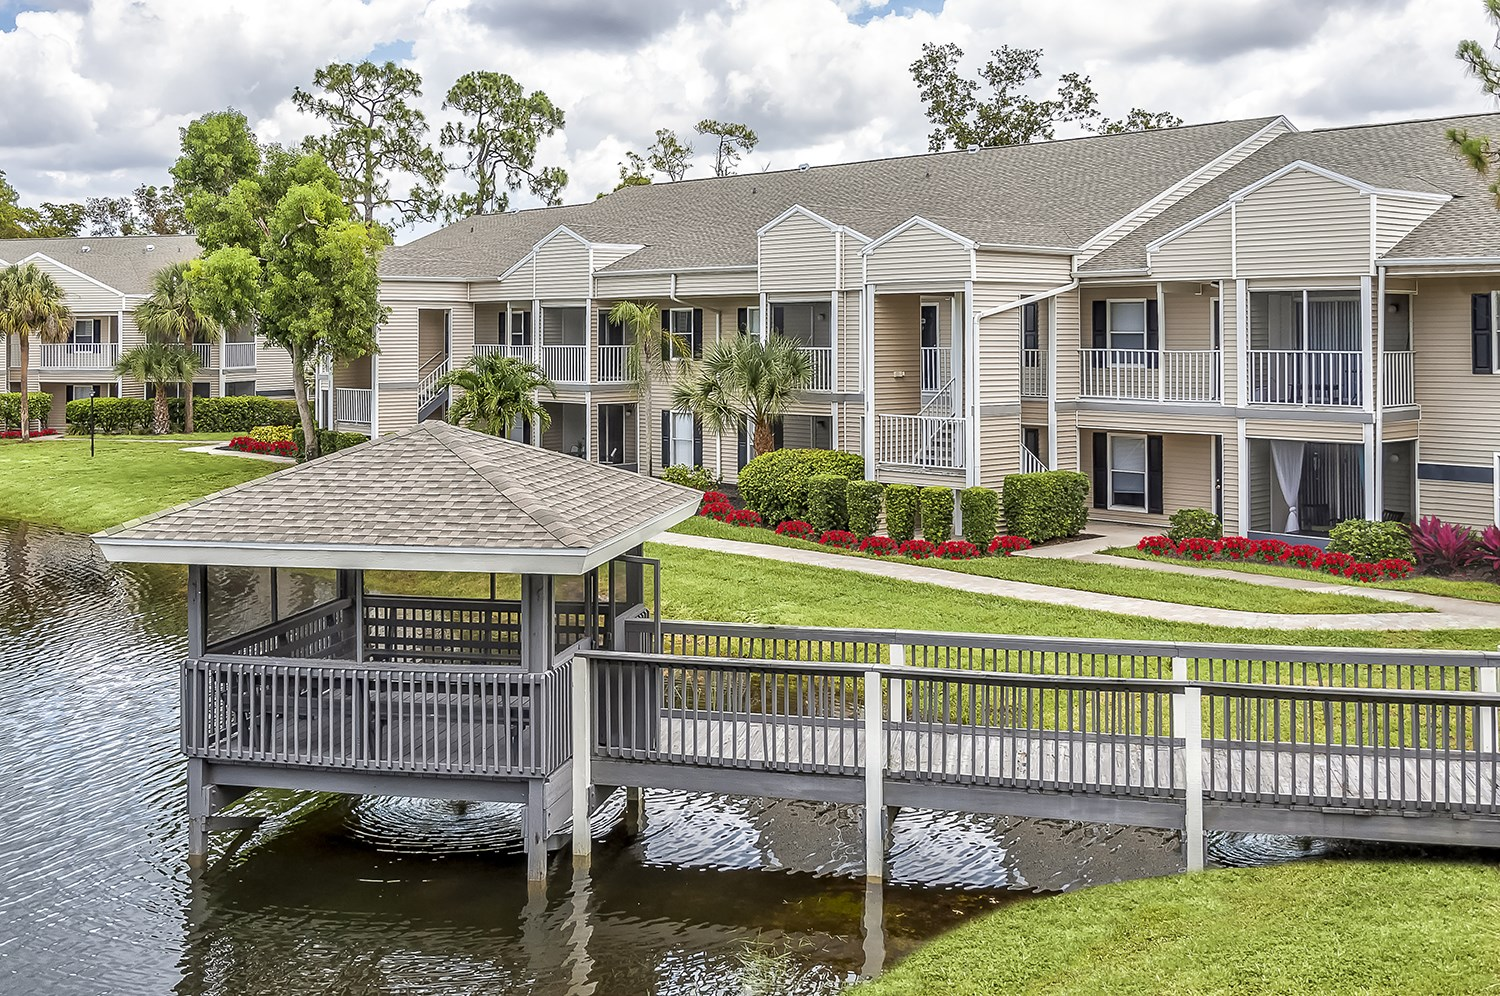 Lake and Gazebo at Brantley Pines Apartments in Ft. Myers, FL